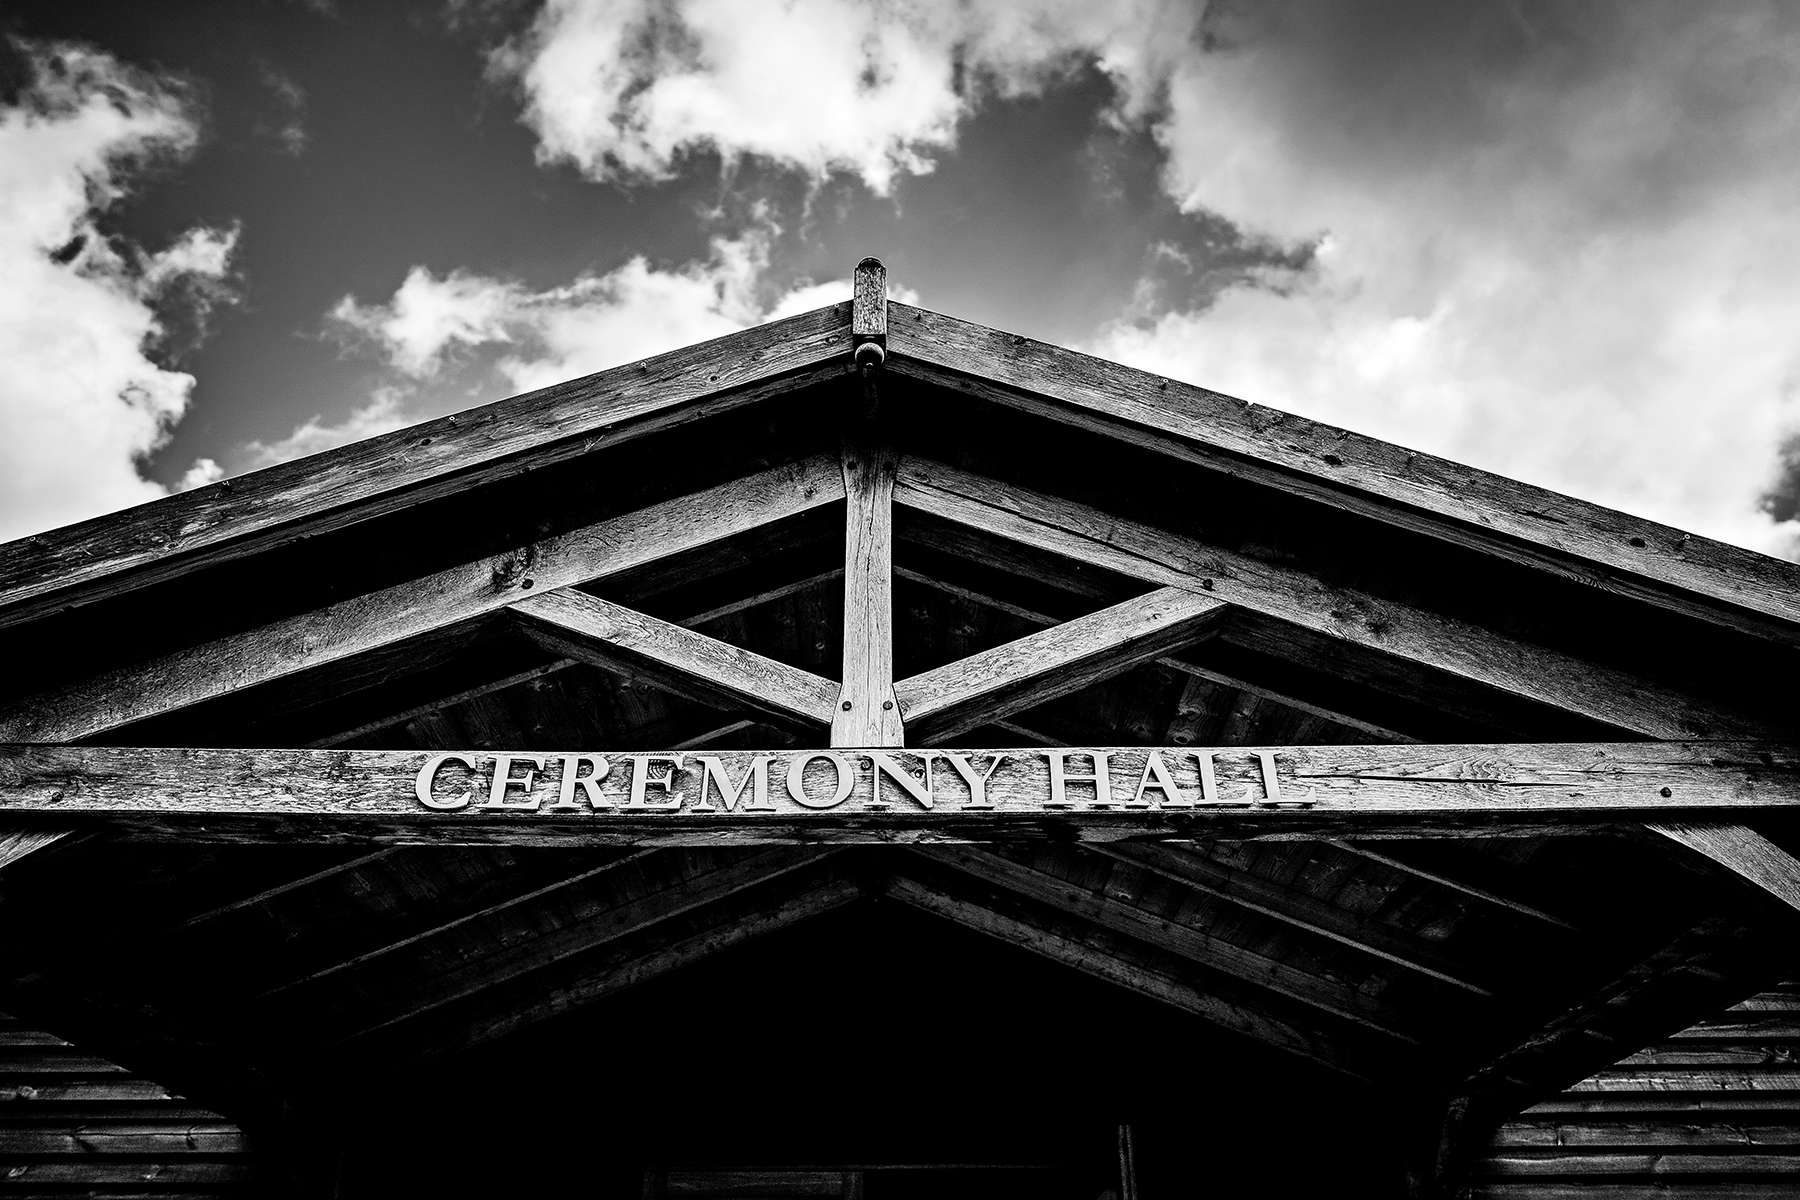 the cermeony hall at Colshaw Hall